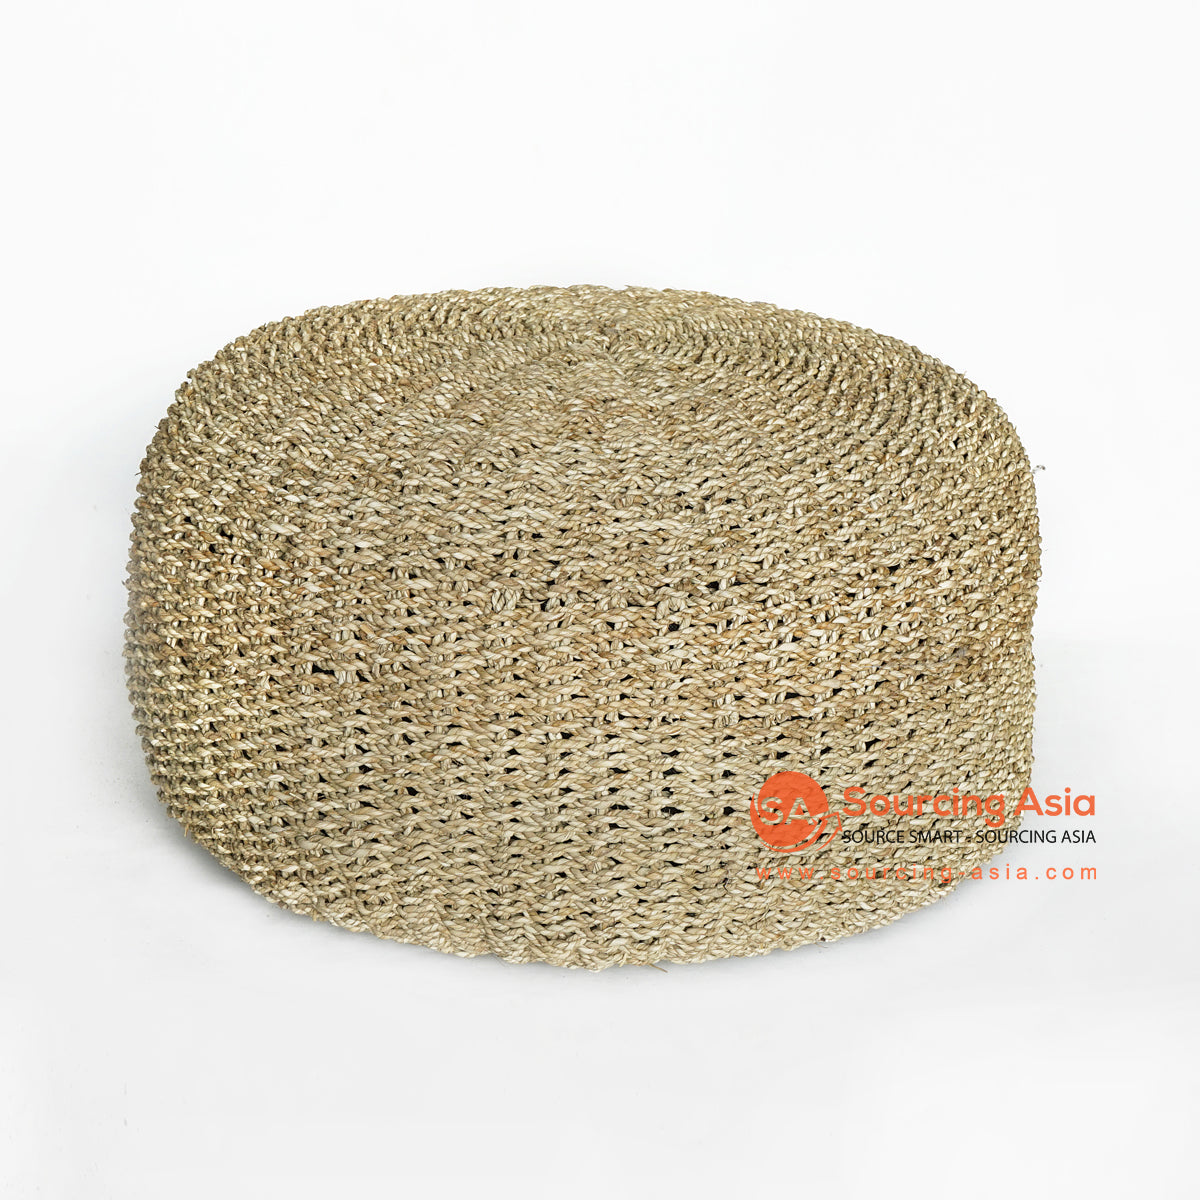 MRC140 NATURAL SEAGRASS ROUND POUFFE